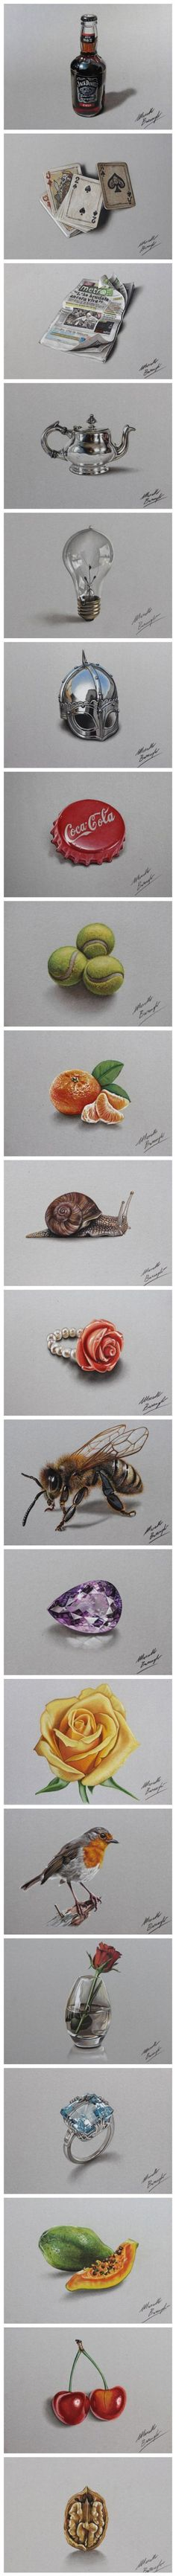 realistic colored pencil drawings by Marcello Barenghi.